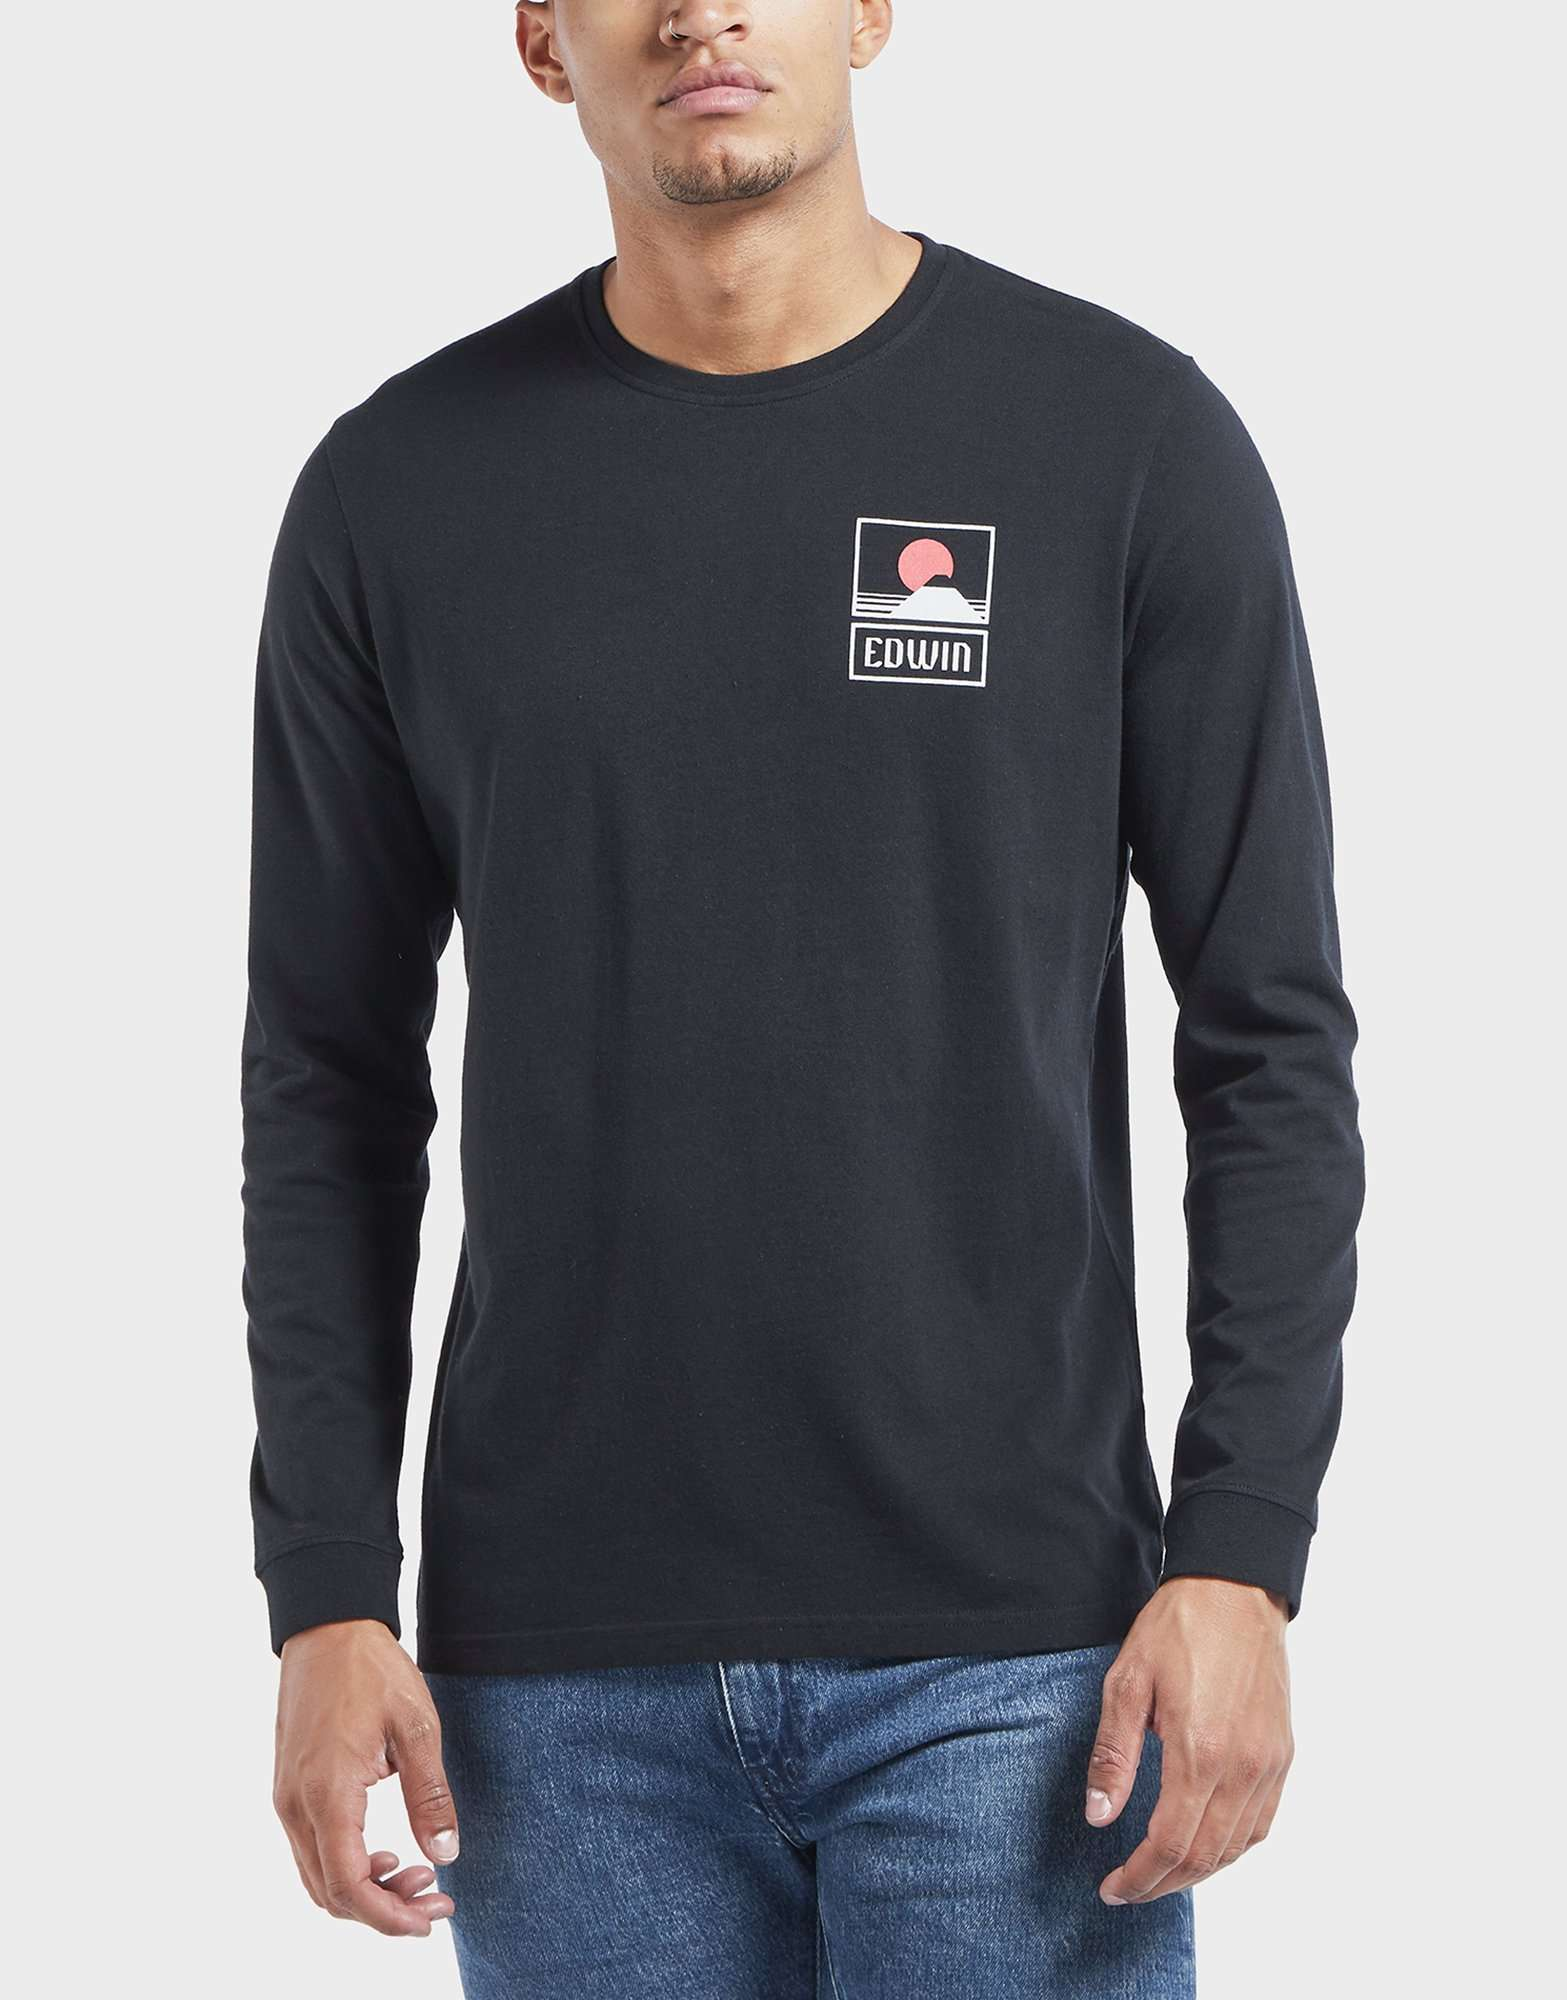 Edwin Sunset Fuji Long Sleeved T-Shirt